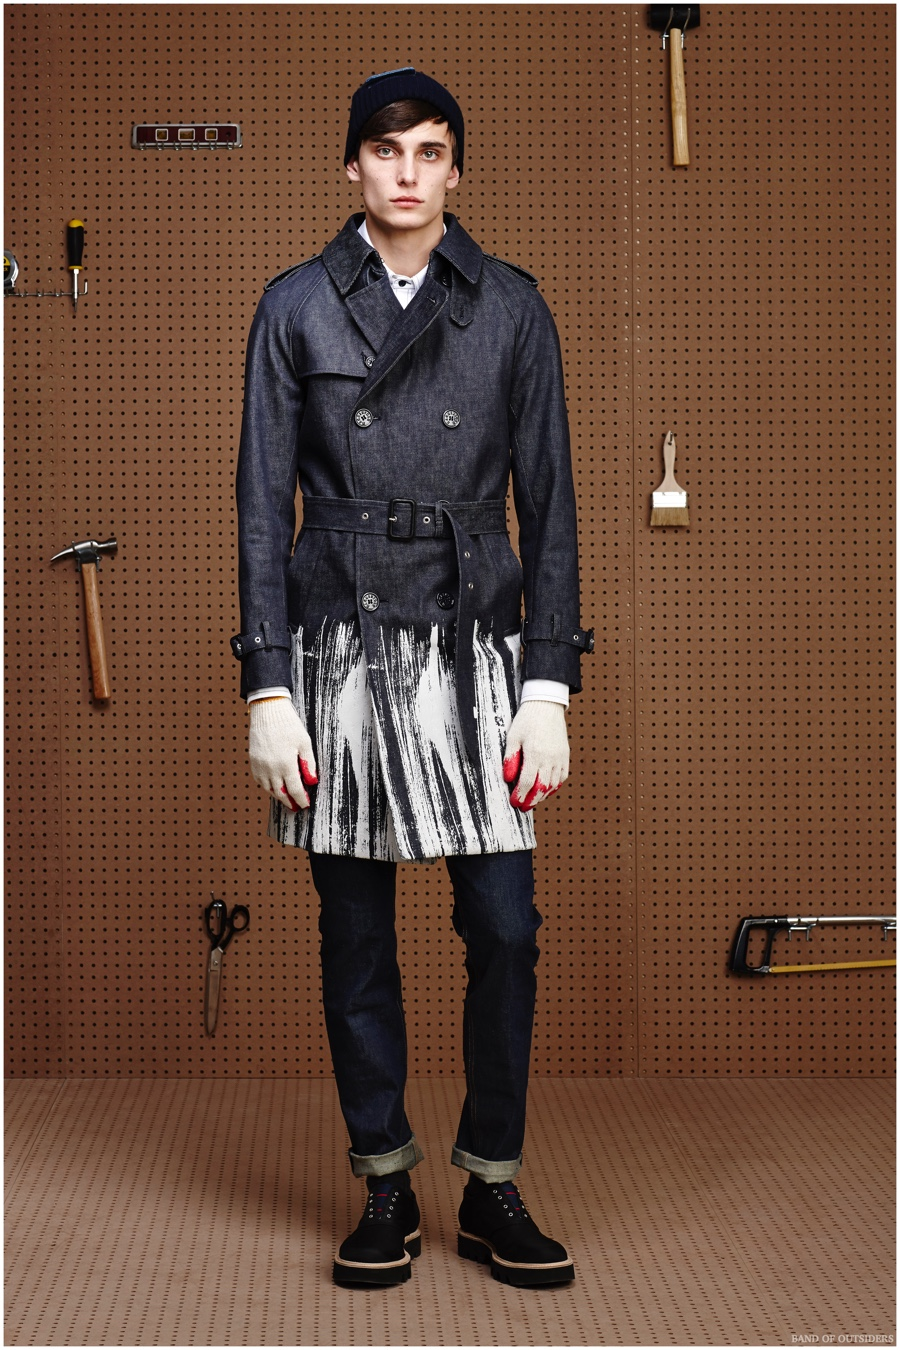 Band of Outsiders Fall/Winter 2015 Menswear Collection Inspired by The Great American Hardware Store